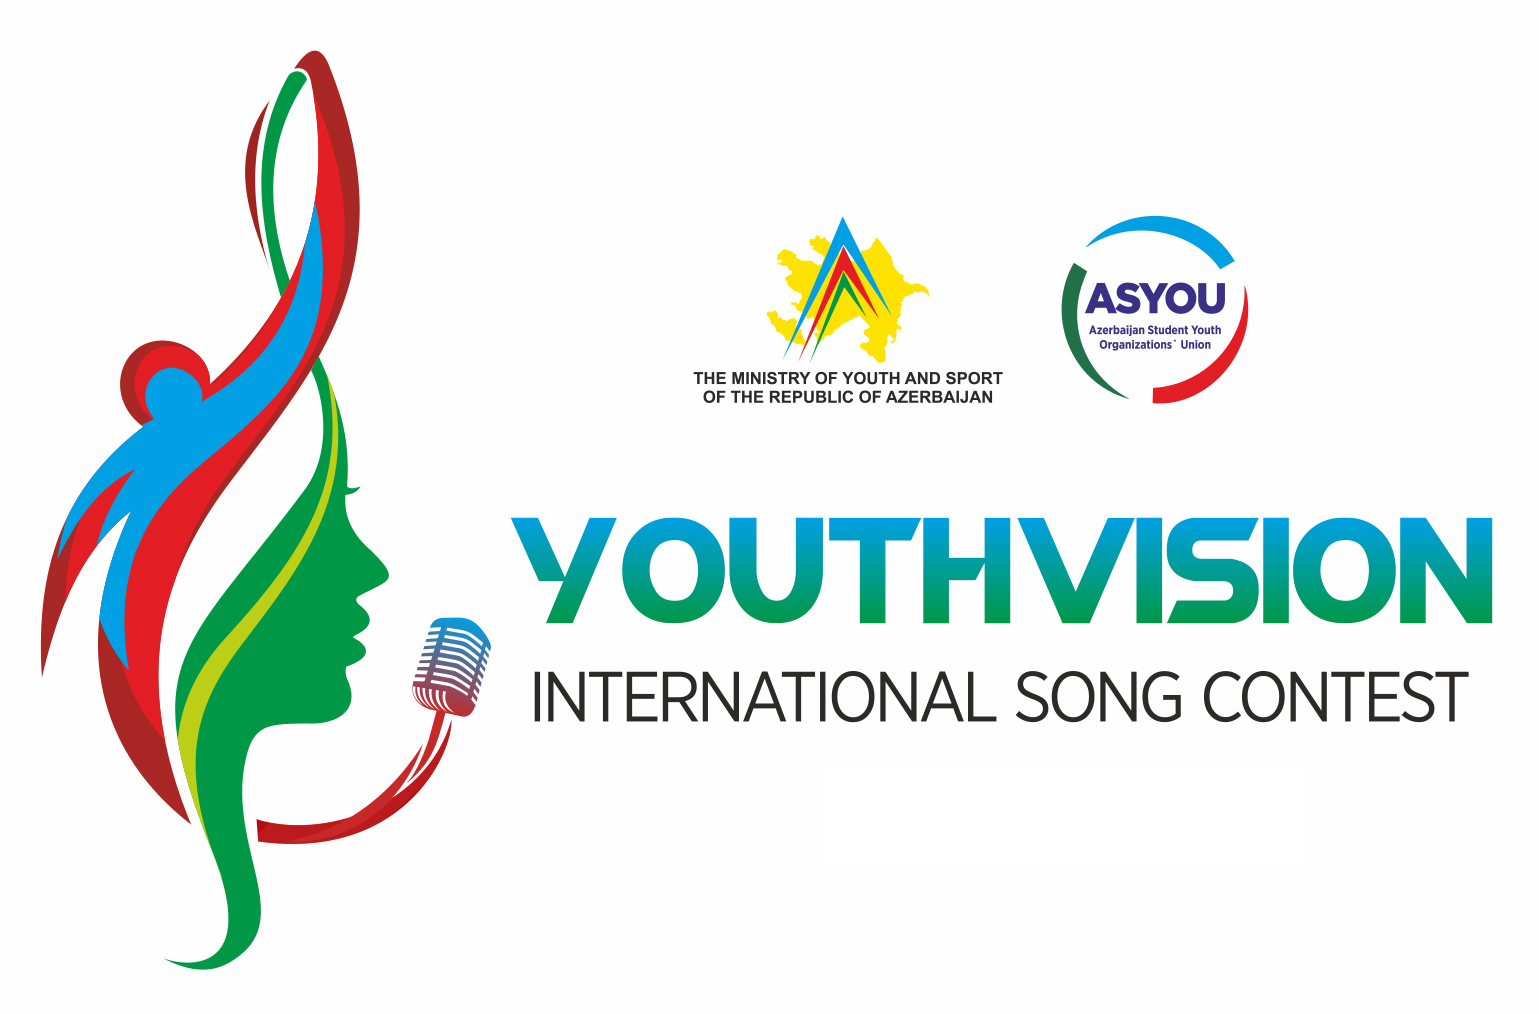 international song contest